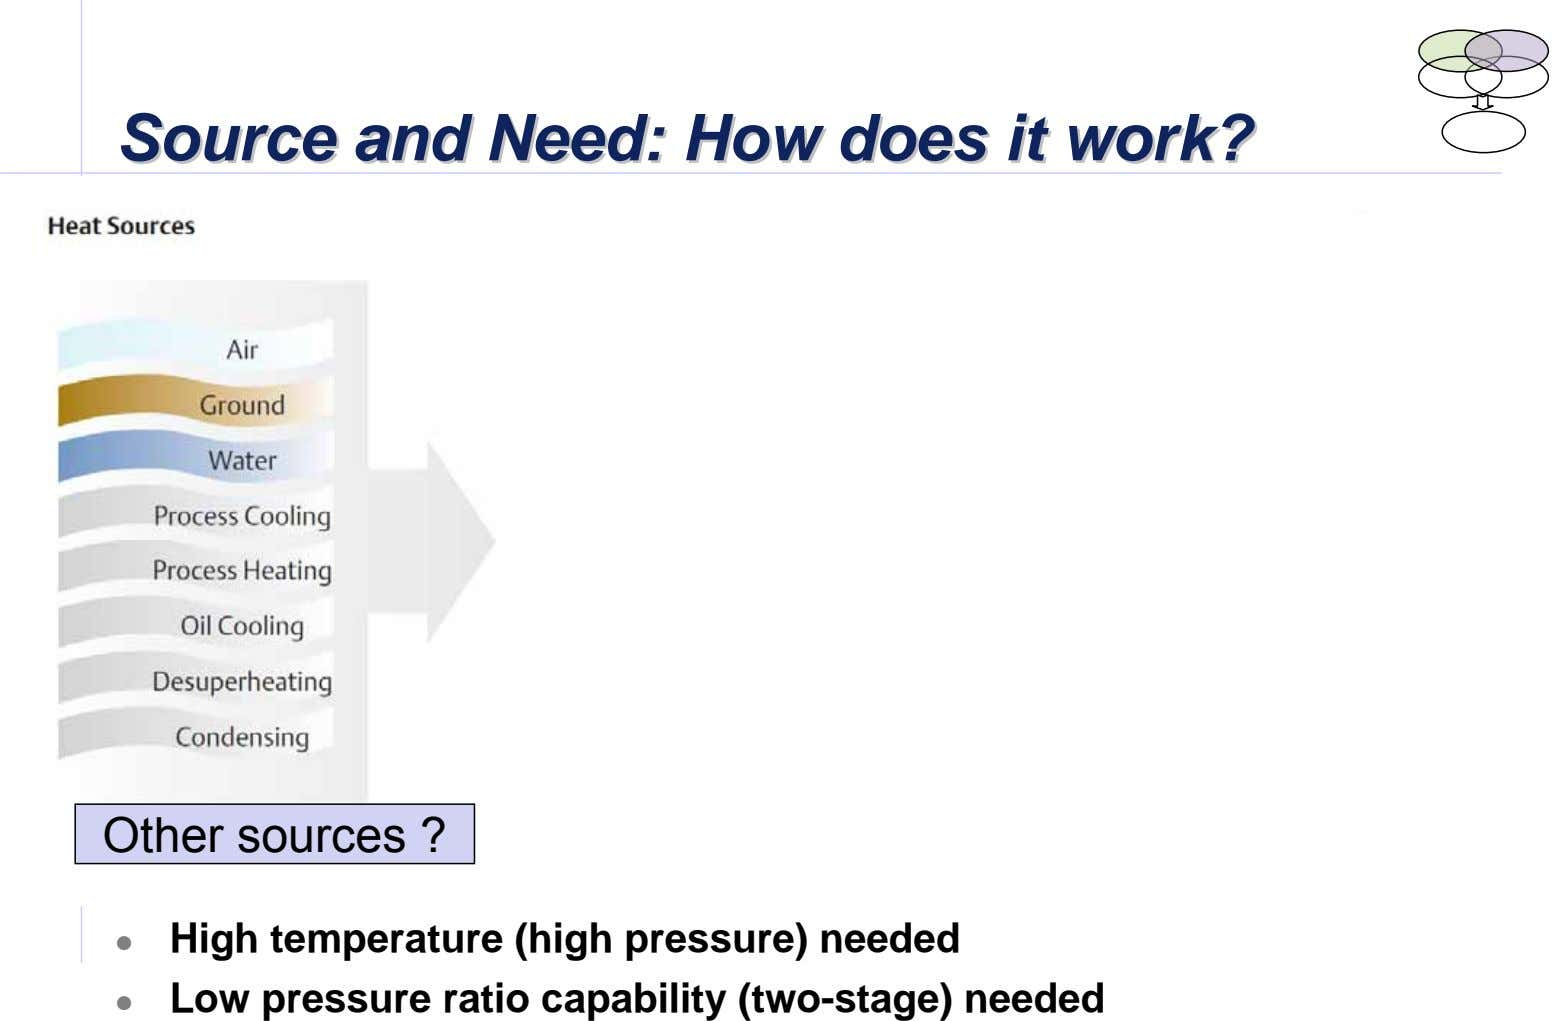 SourceSourceSource andandand Need:Need:Need: HowHowHow doesdoesdoes ititit work?work?work? Other sources ? High